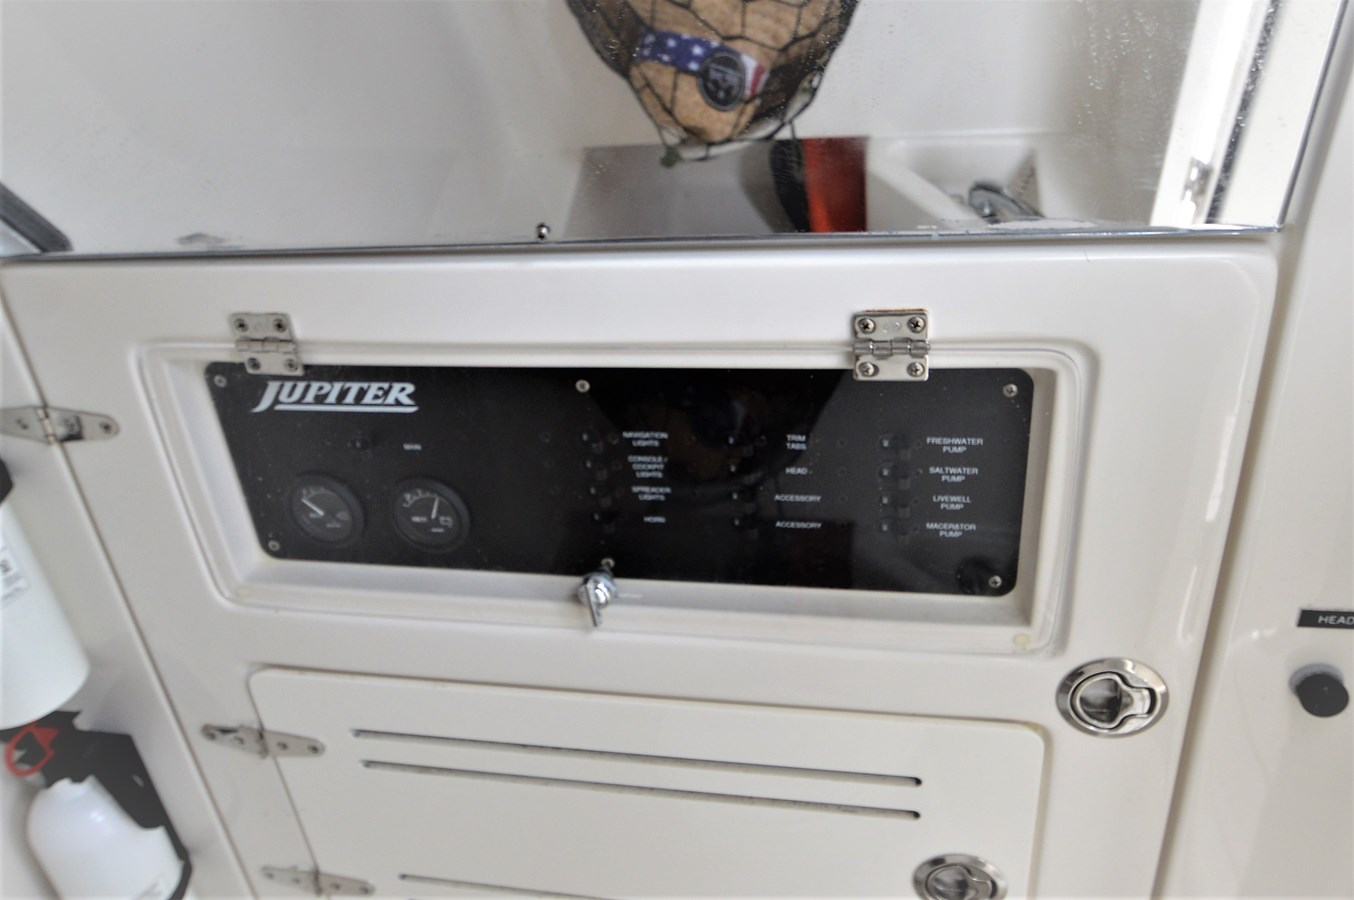 Electronics - 30 JUPITER For Sale